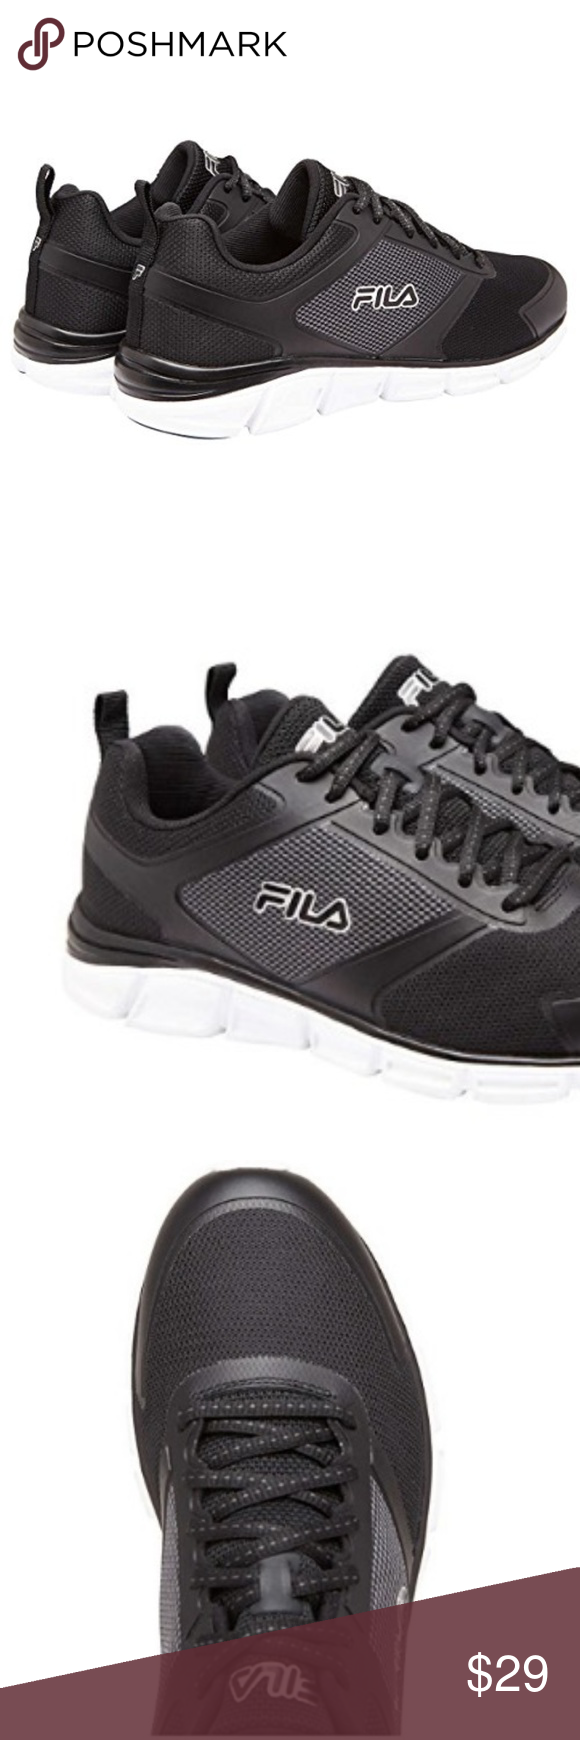 054d1e595454 Fila Men s Memory Steelsprint Athletic Shoes Move and flex freely with  these men s FILA Memory Steelsprint